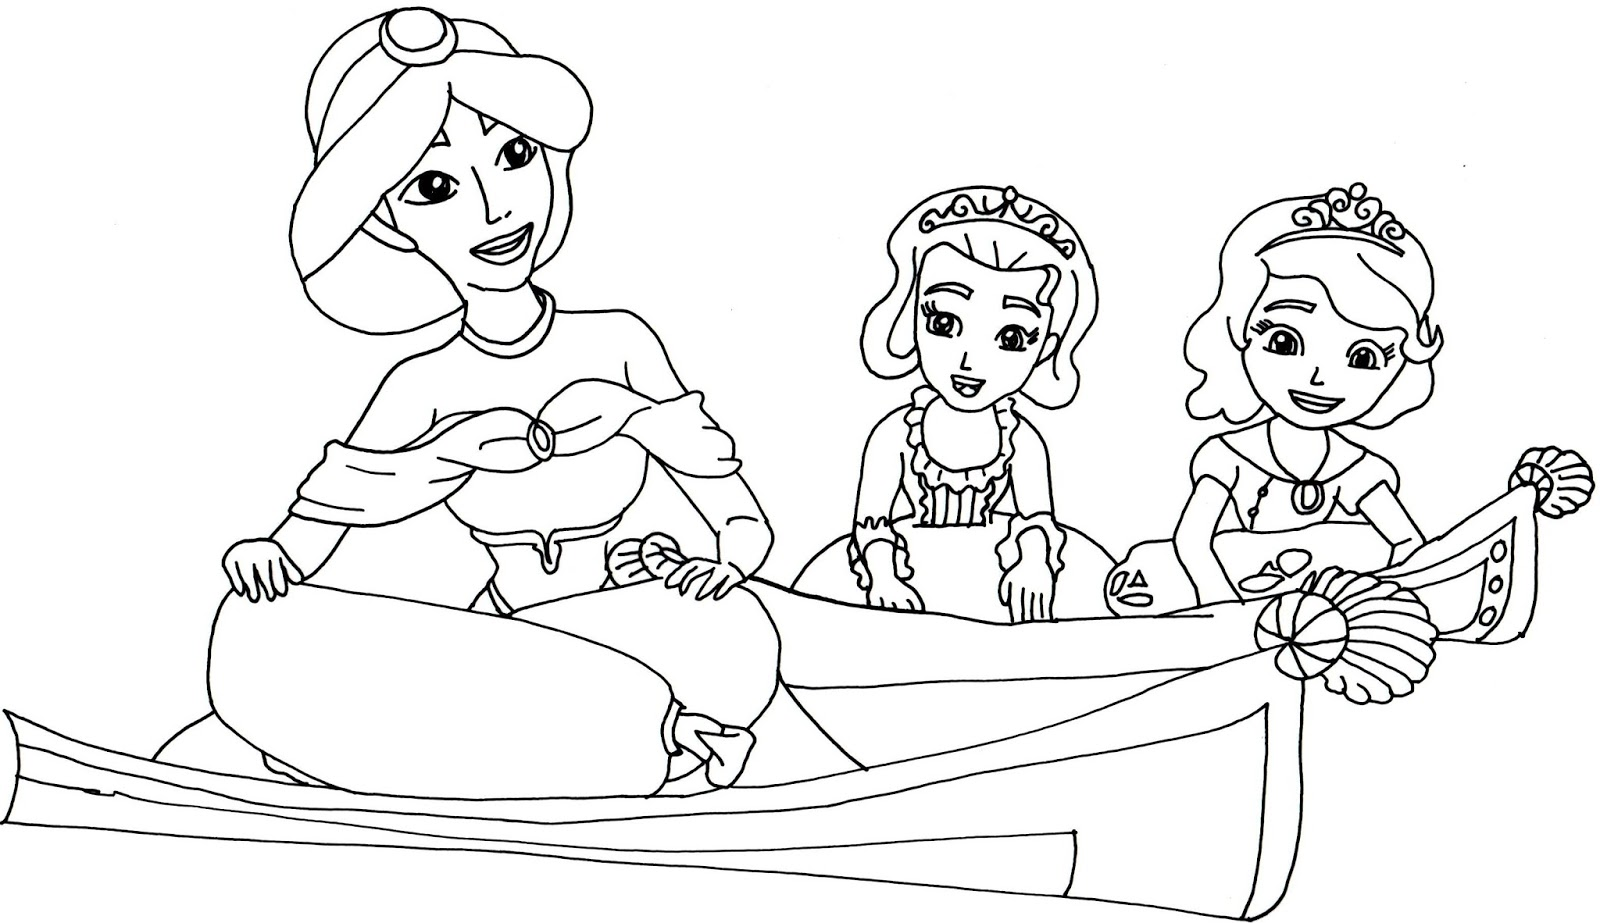 Princess amber coloring pages